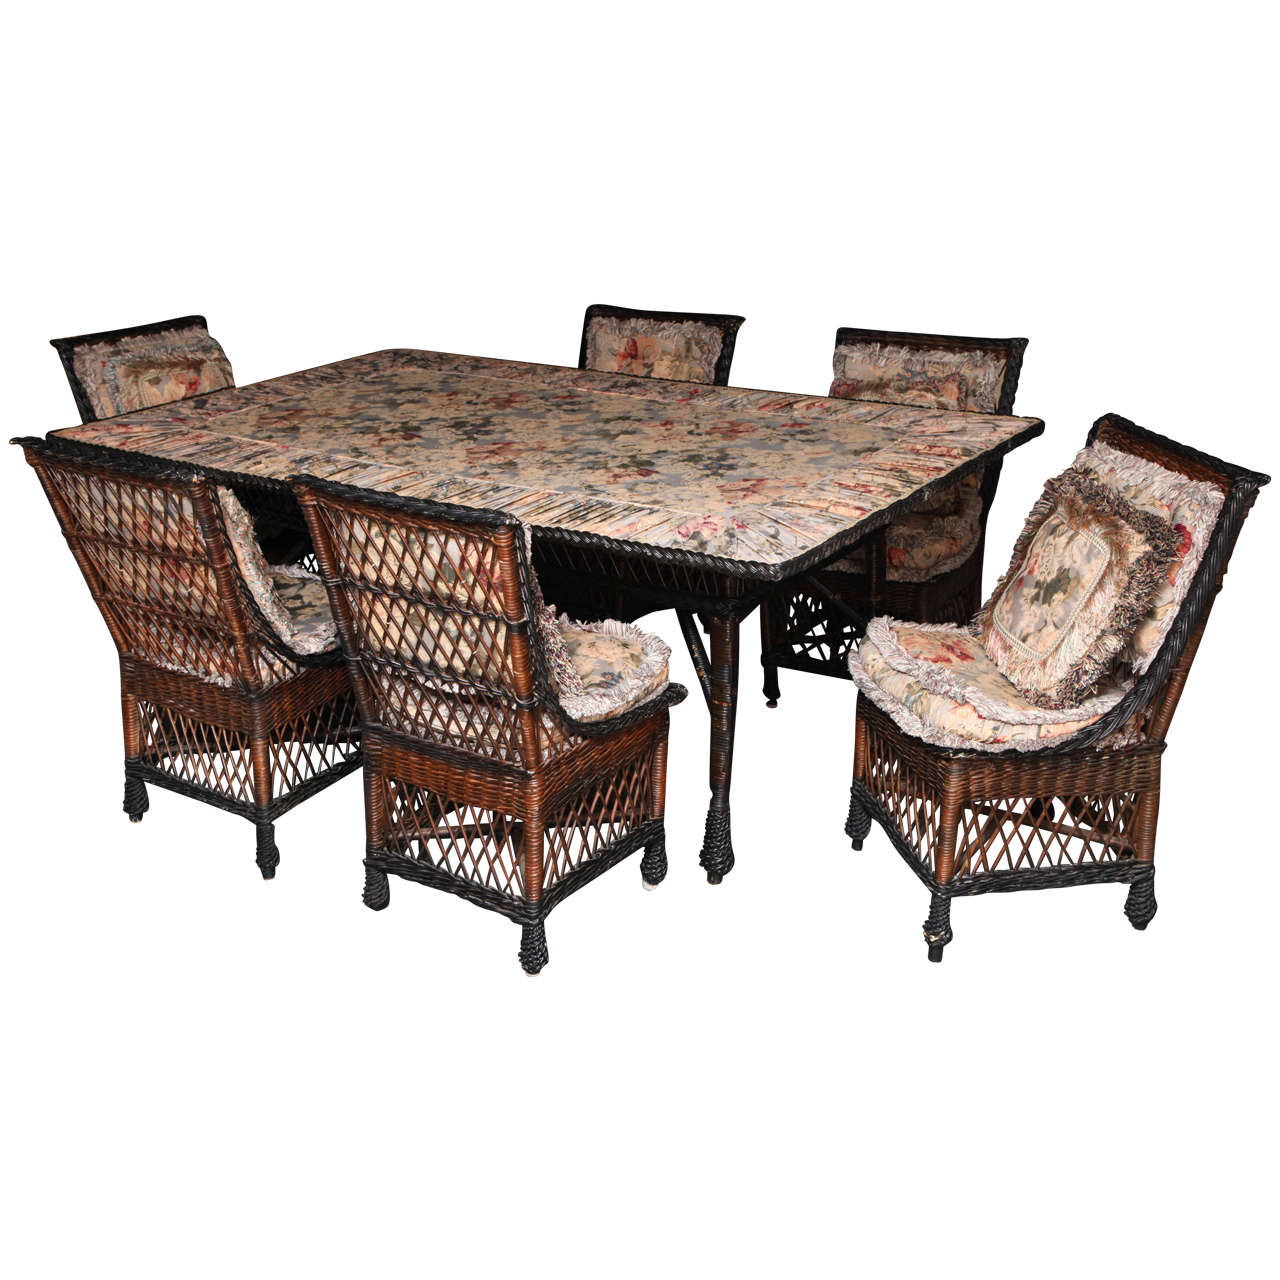 Wicker Dining Table Sets ~ Antique bar harbor wicker dining table and set of chairs